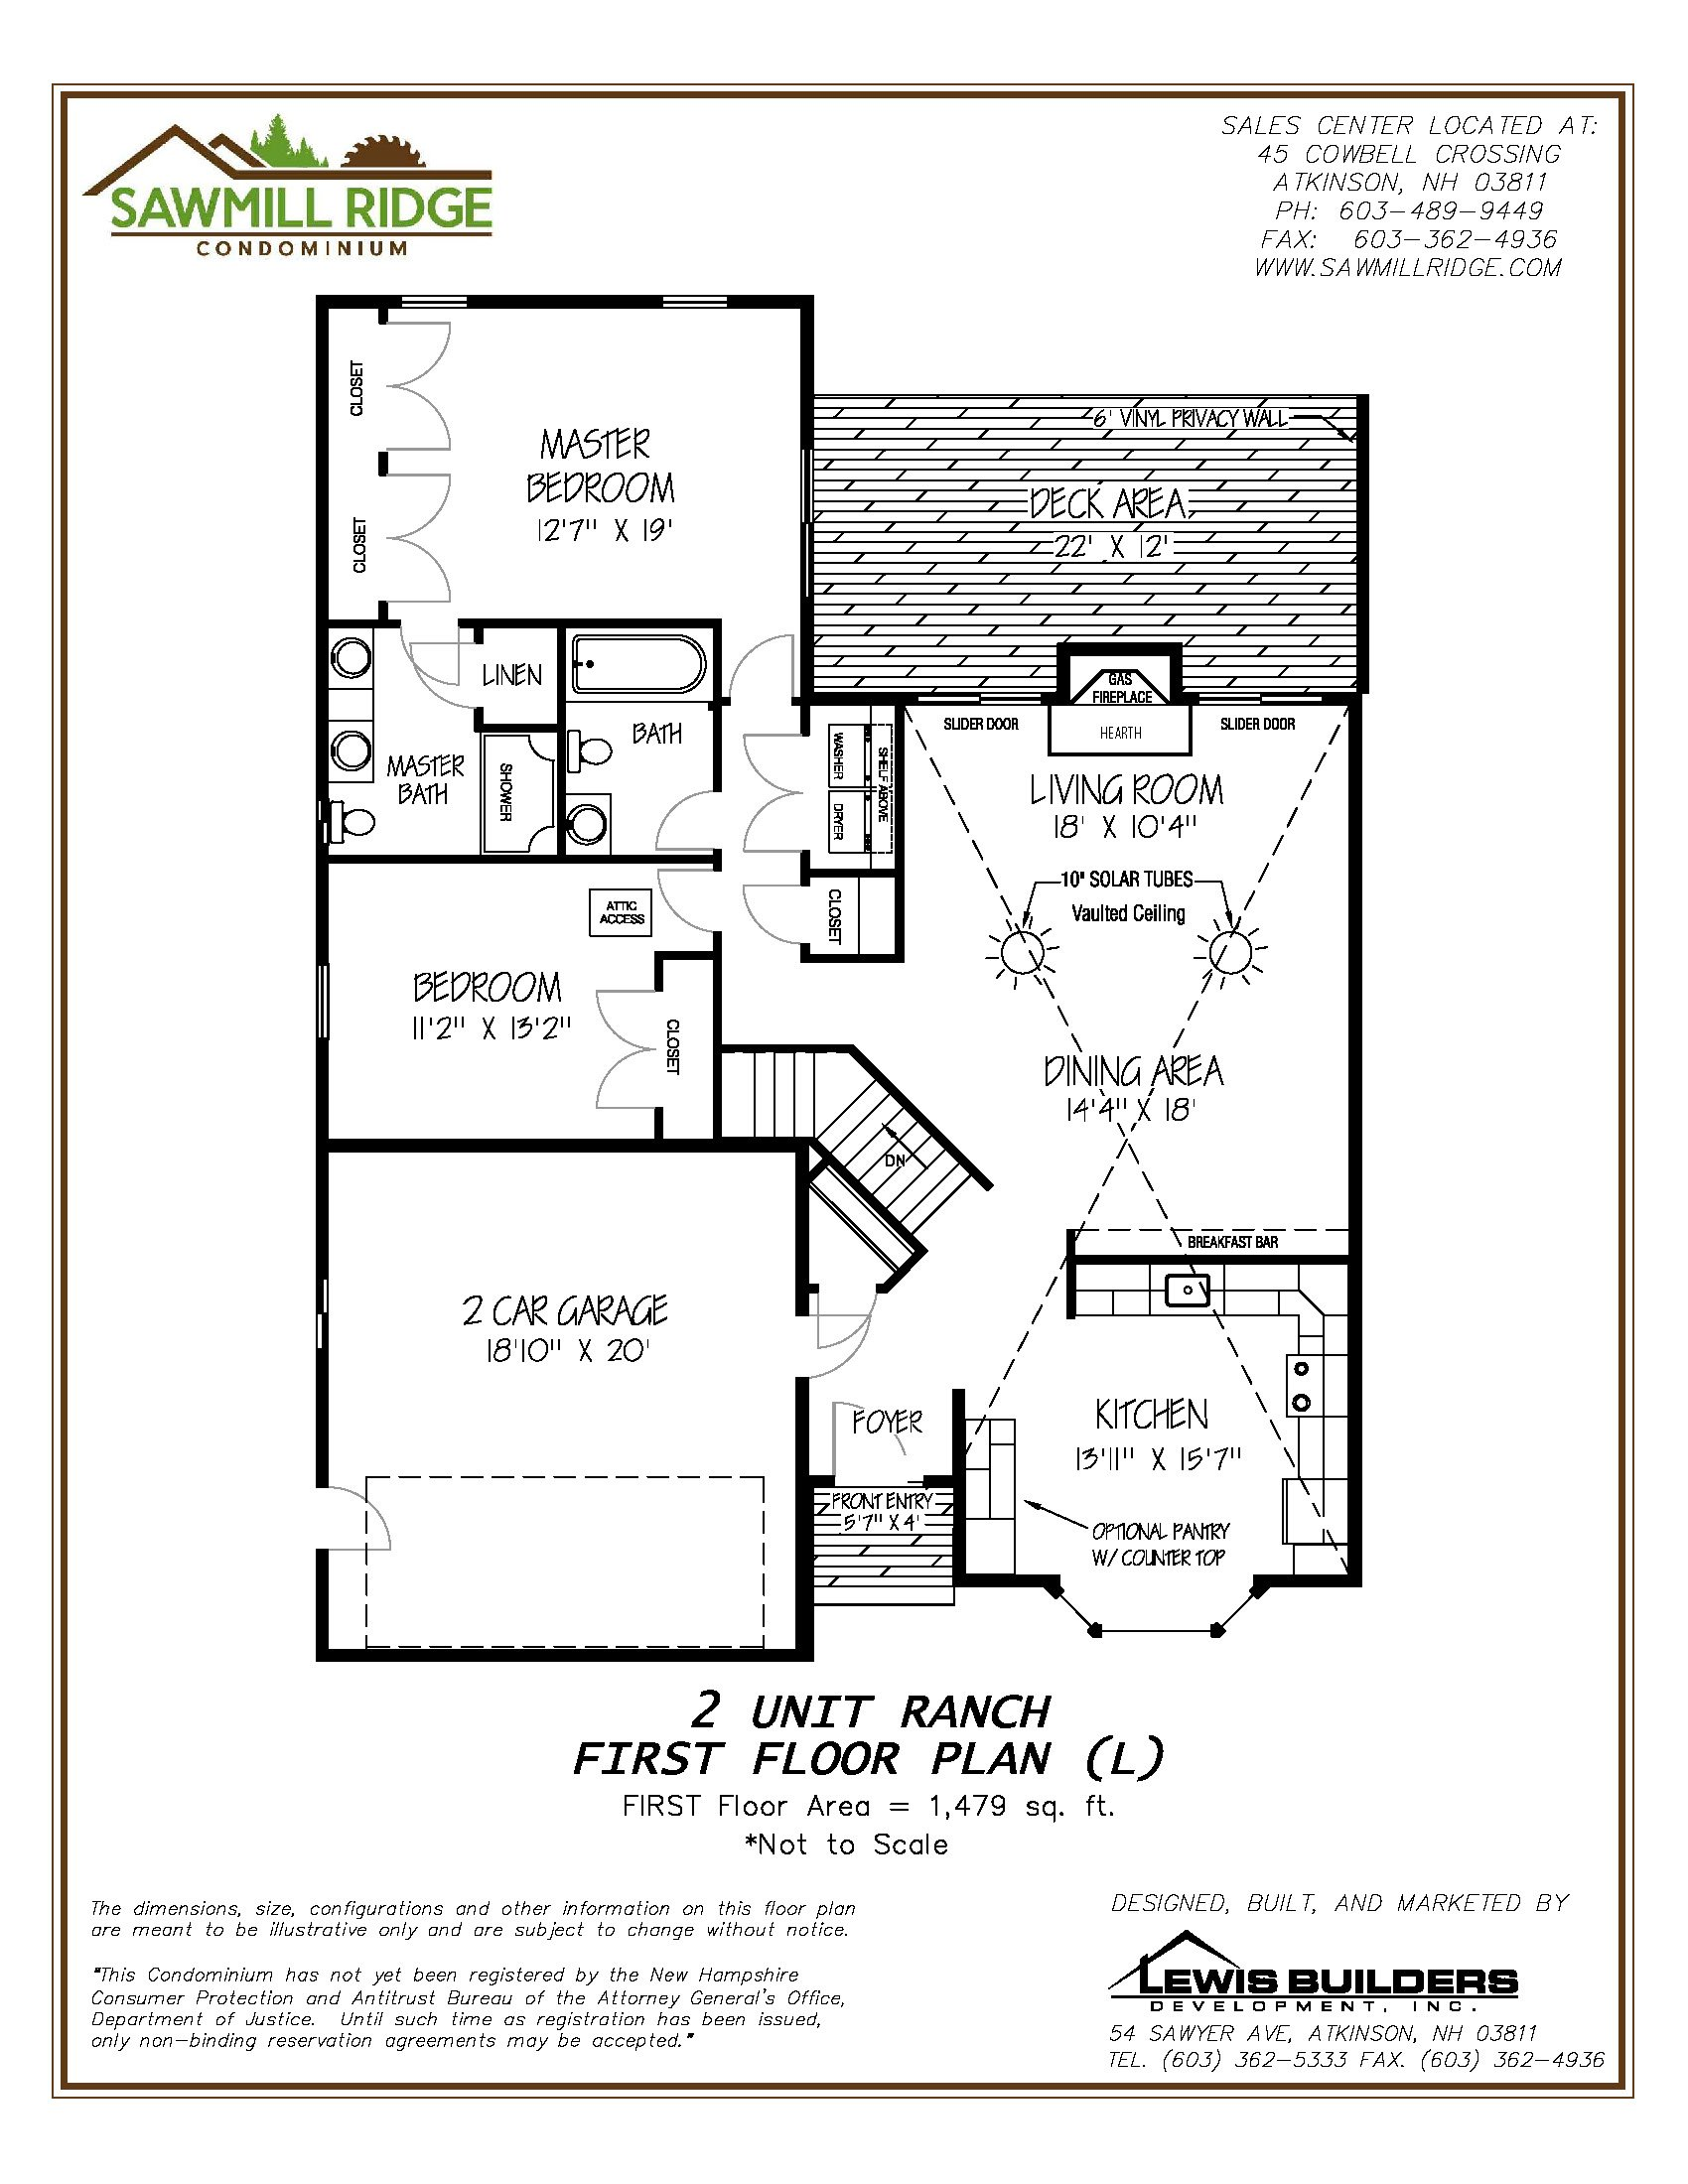 New Condo Floor Plans at Sawmill Ridge in Atkinson NH